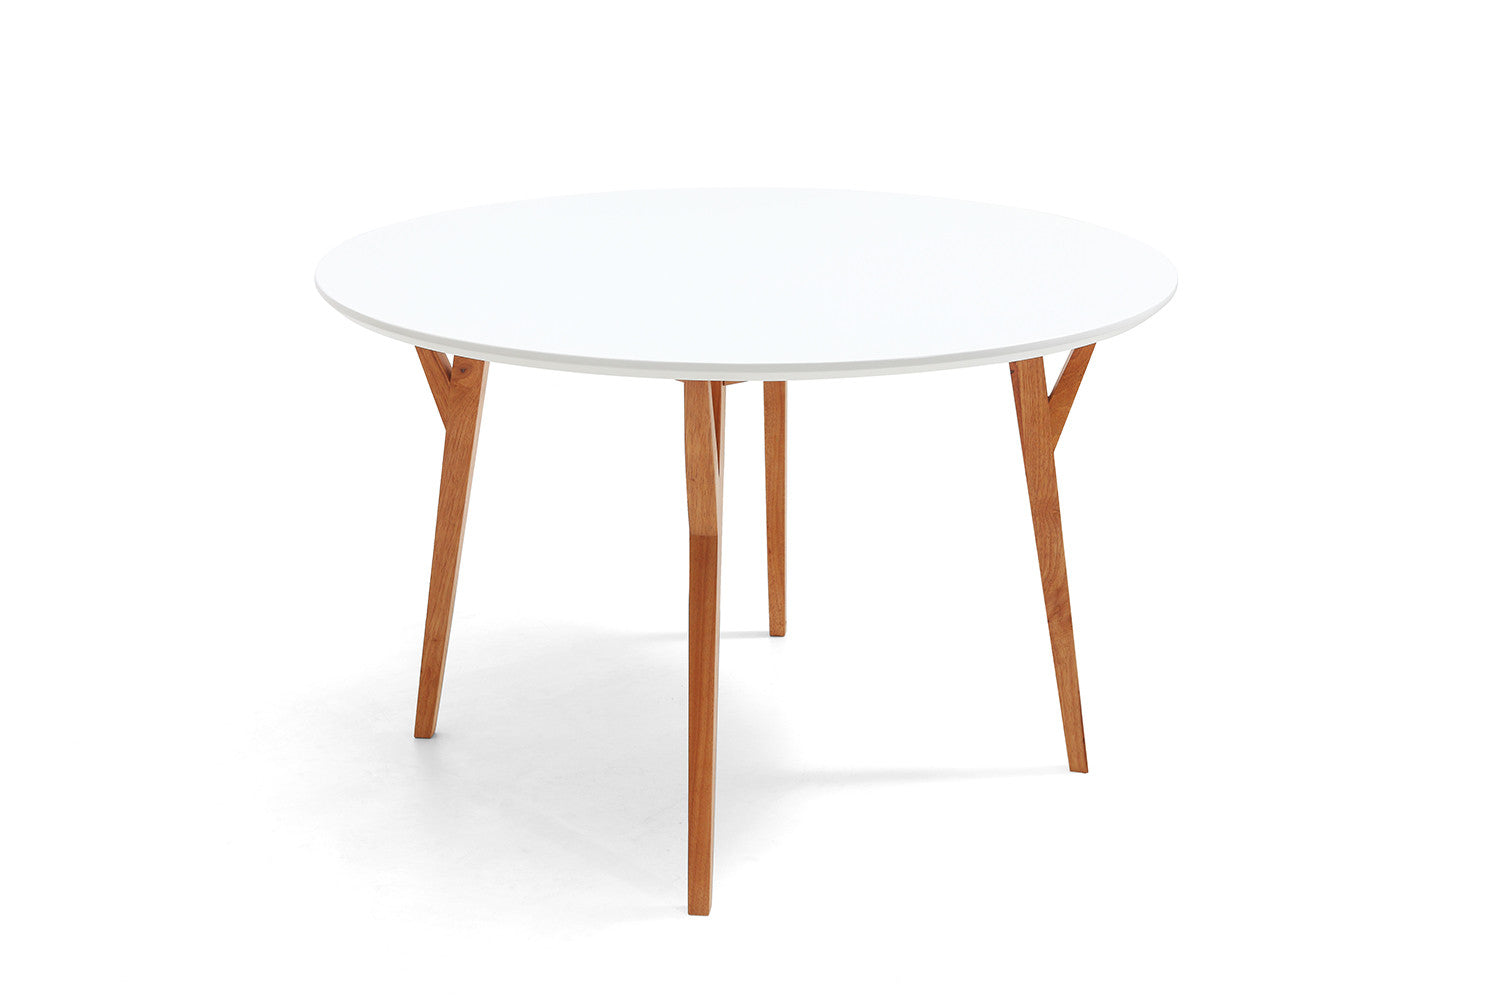 Table de salle manger ronde design scandinave moesa for Table ronde rallonge design